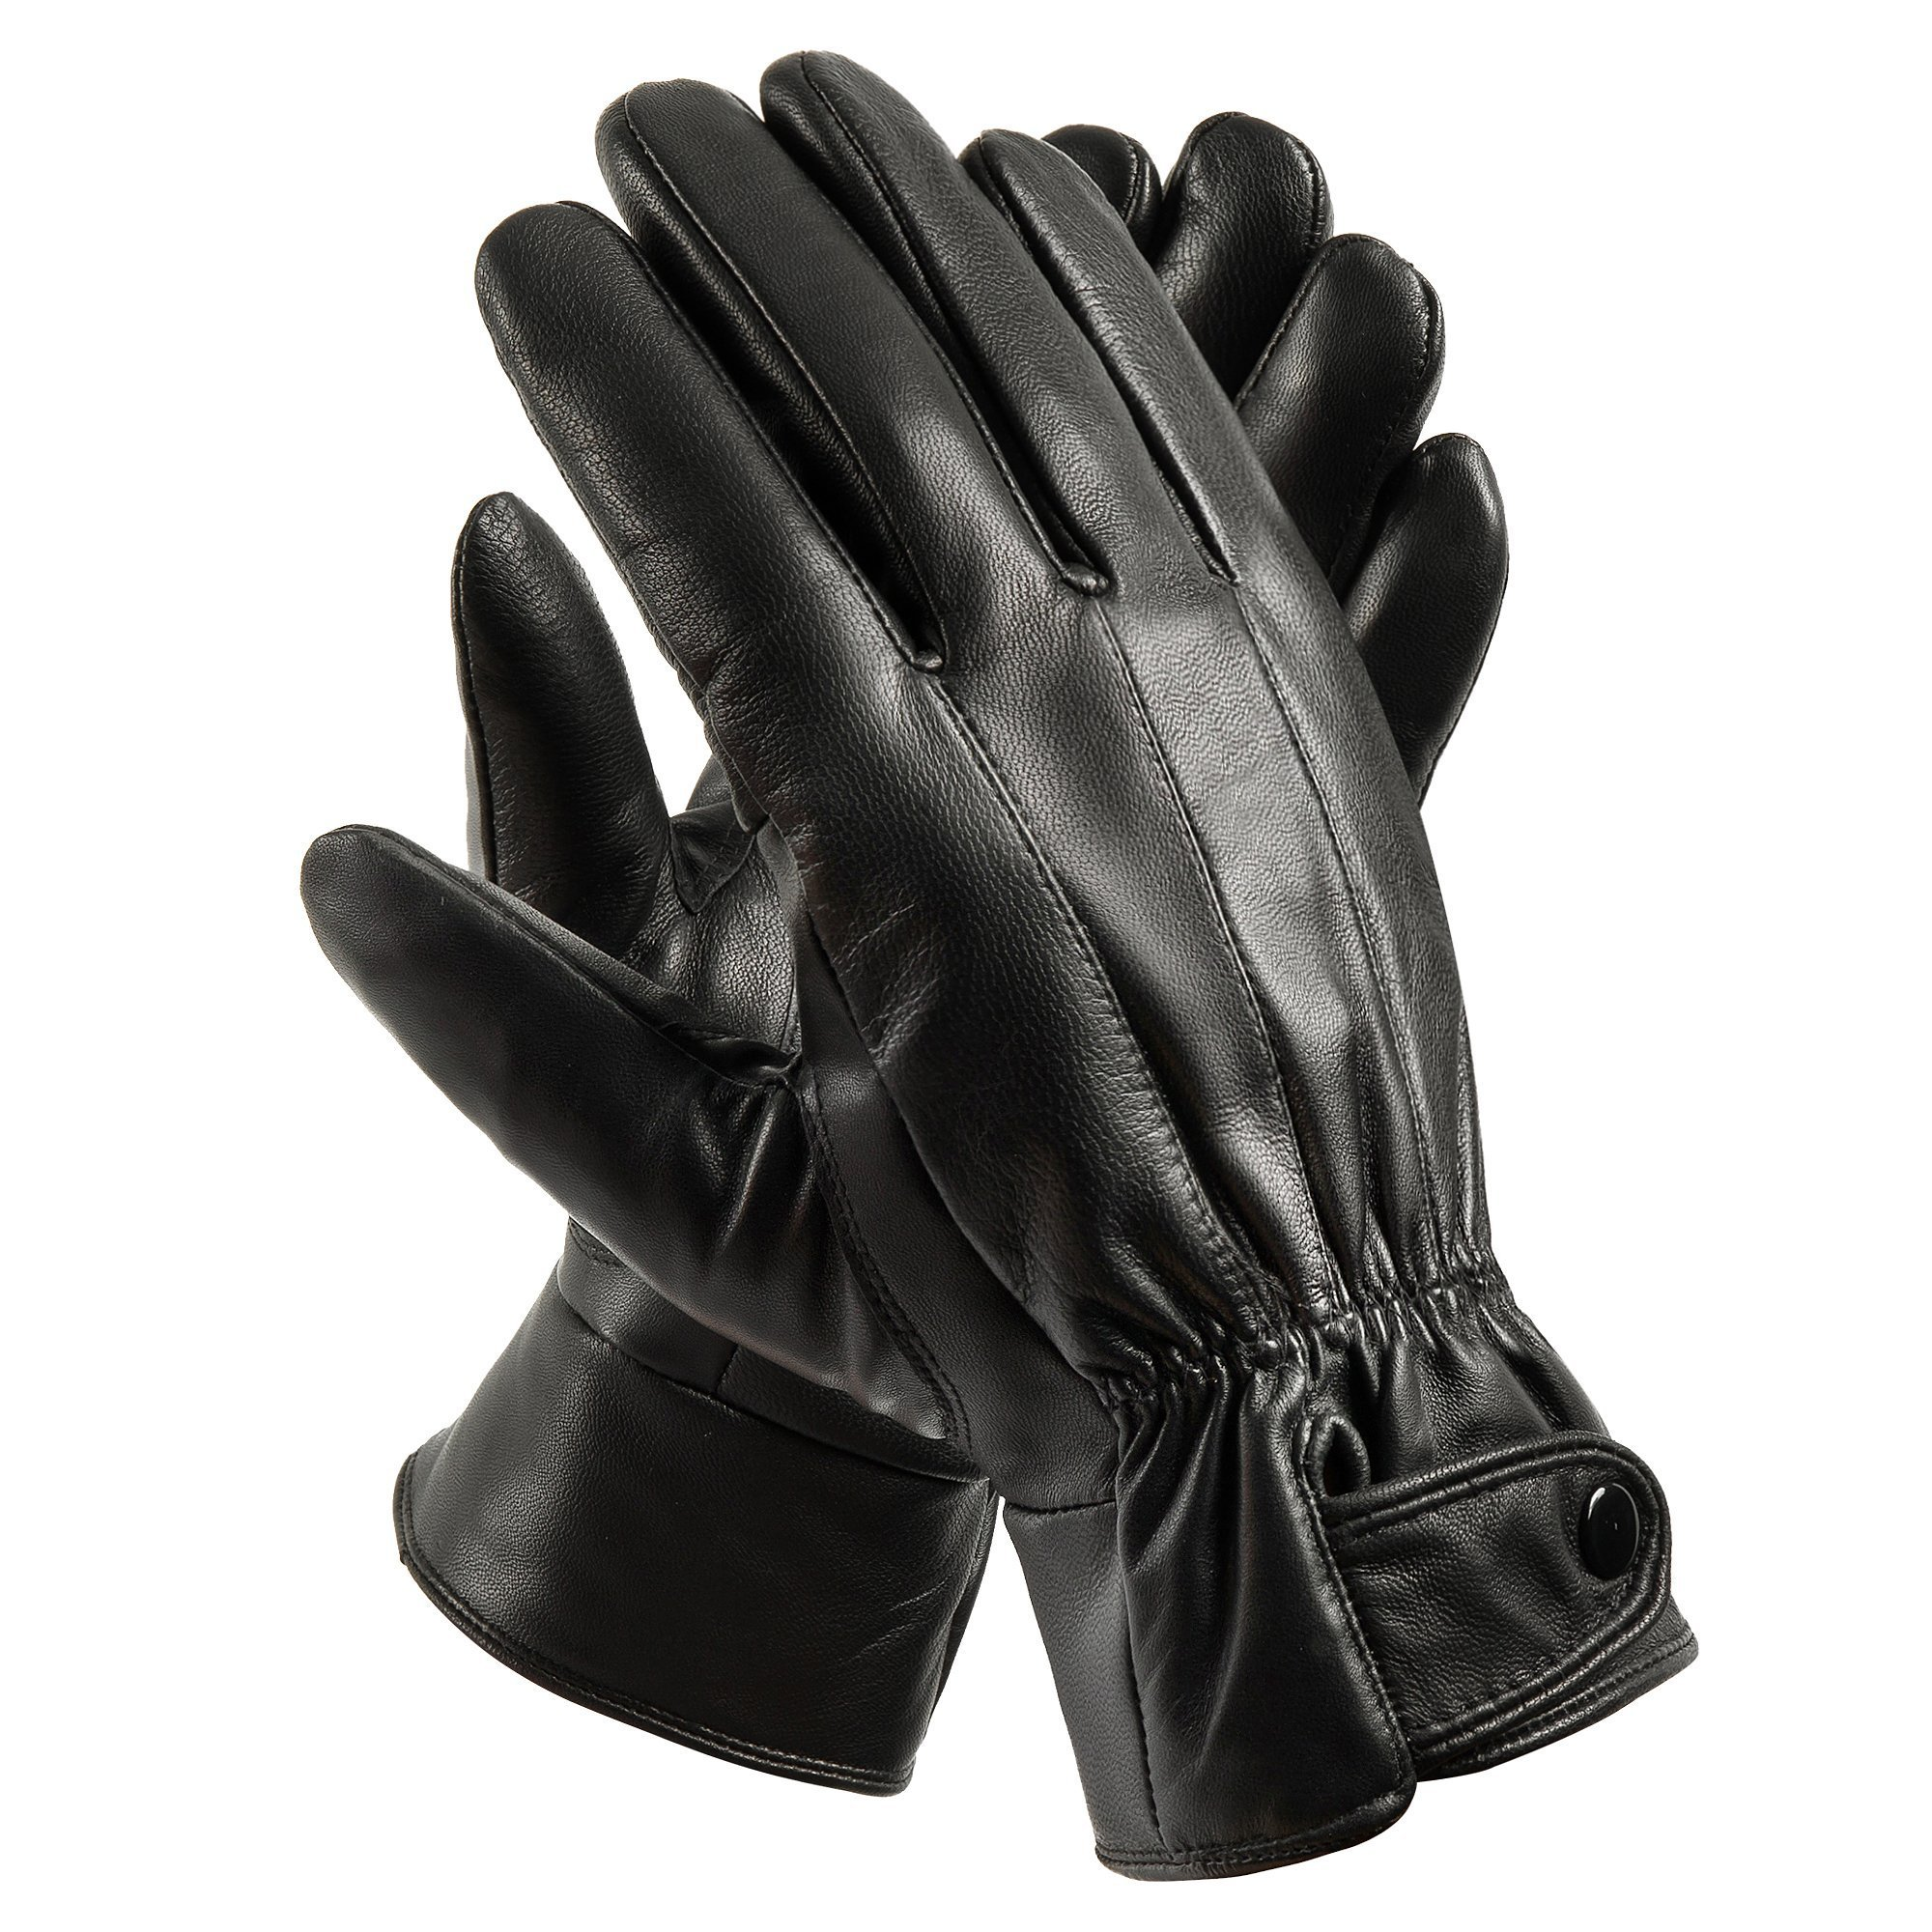 Anccion Men's Genuine Leather Warm Lined Driving Gloves, Motorcycle Gloves (Medium)